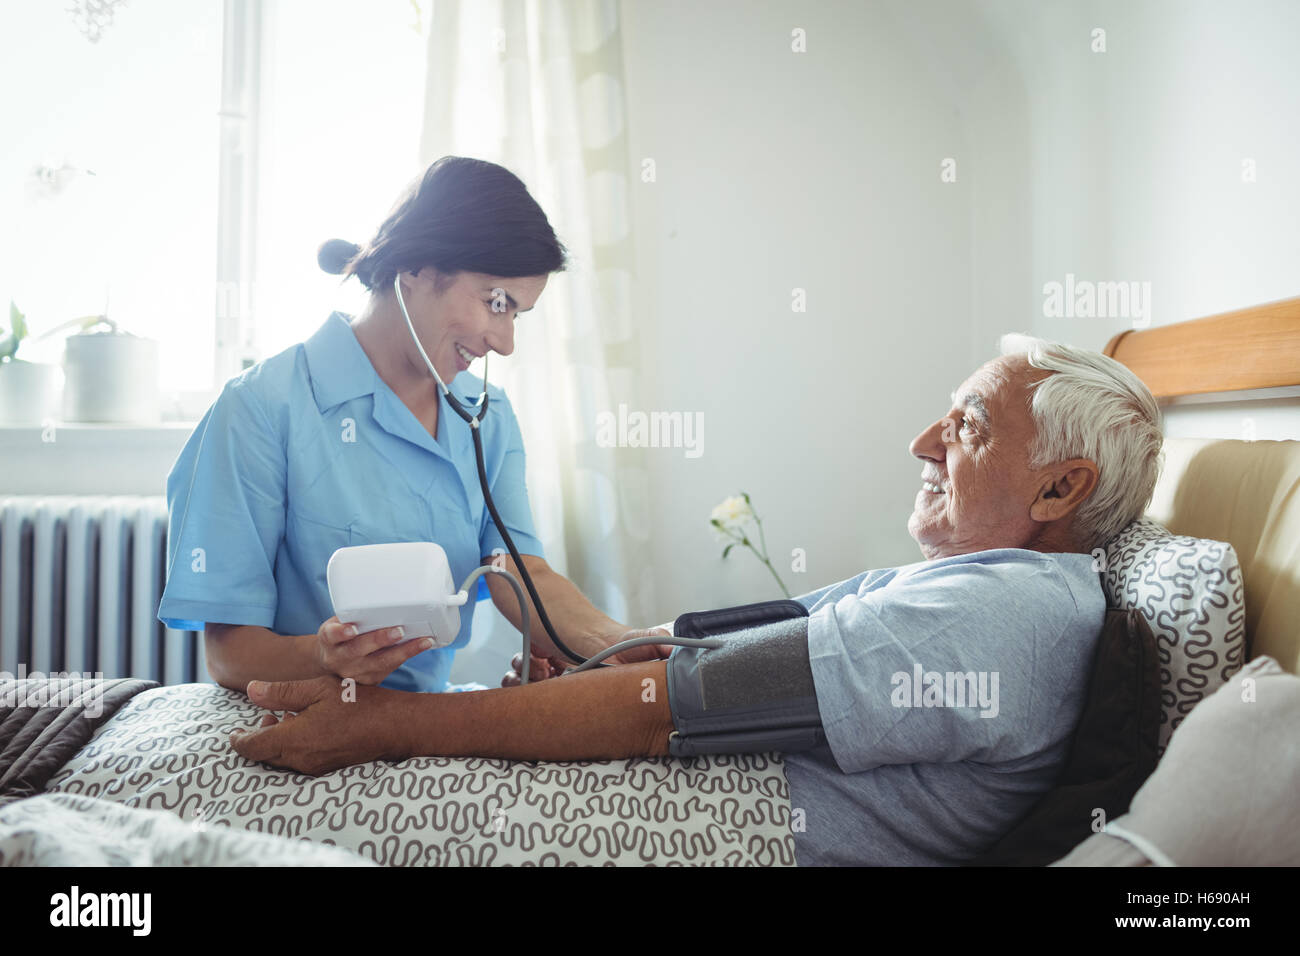 Nurse checking blood pressure of senior man - Stock Image